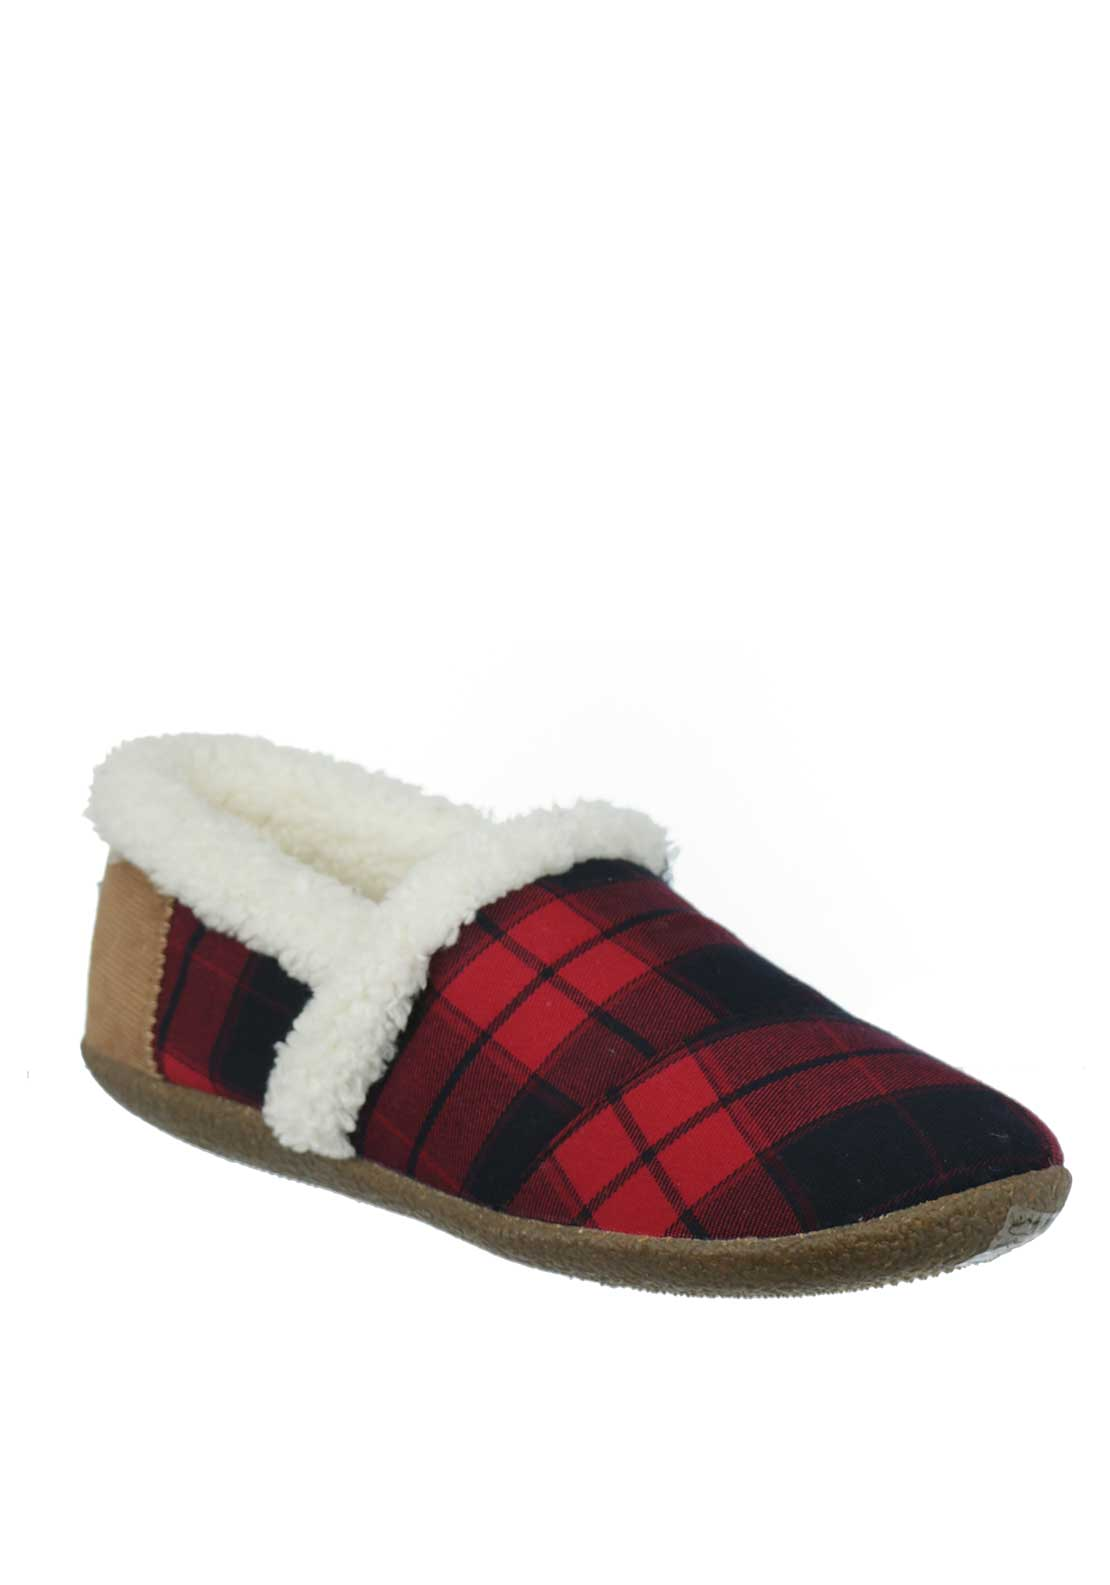 TOMS Womens Plaid House Slippers, Red